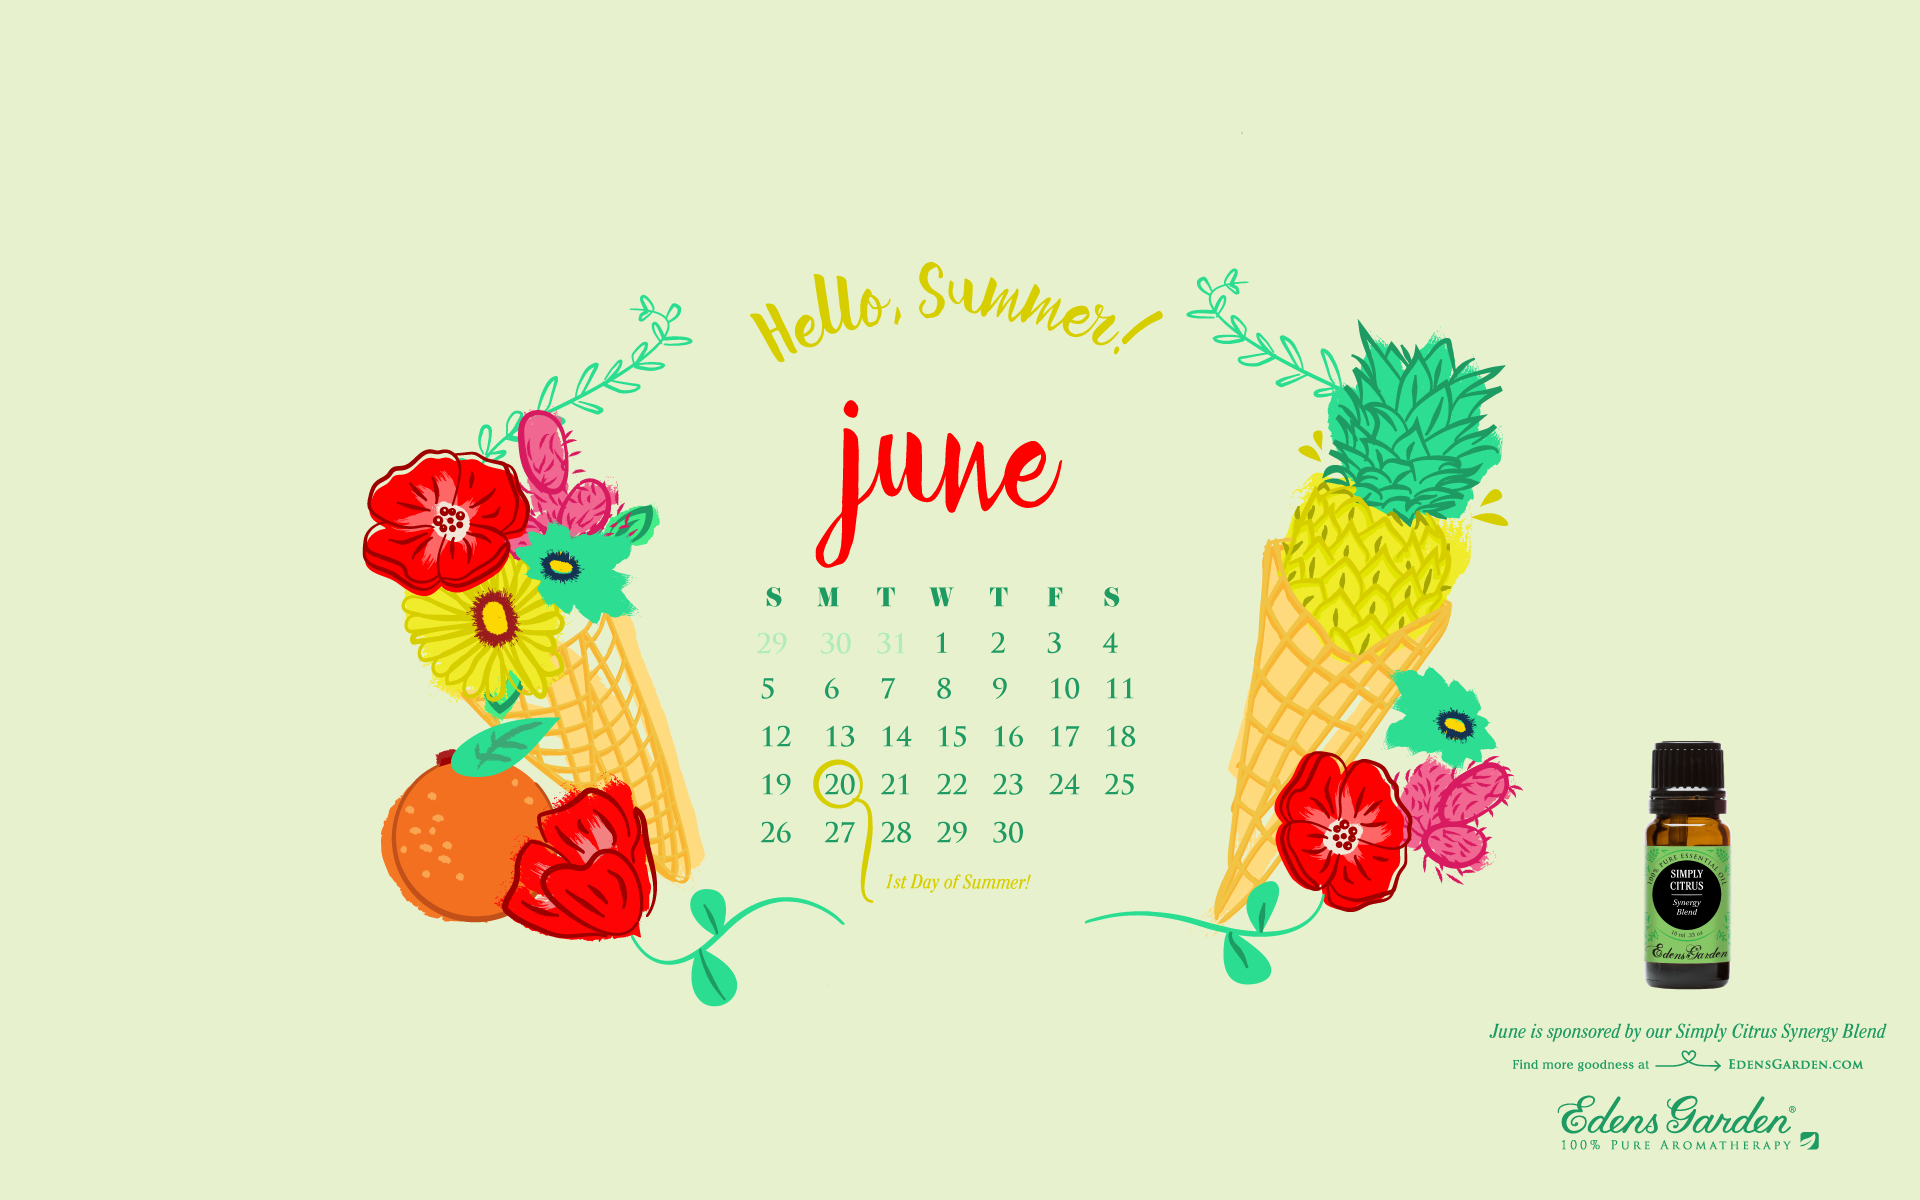 June 2016 free desktop wallpaper calendar